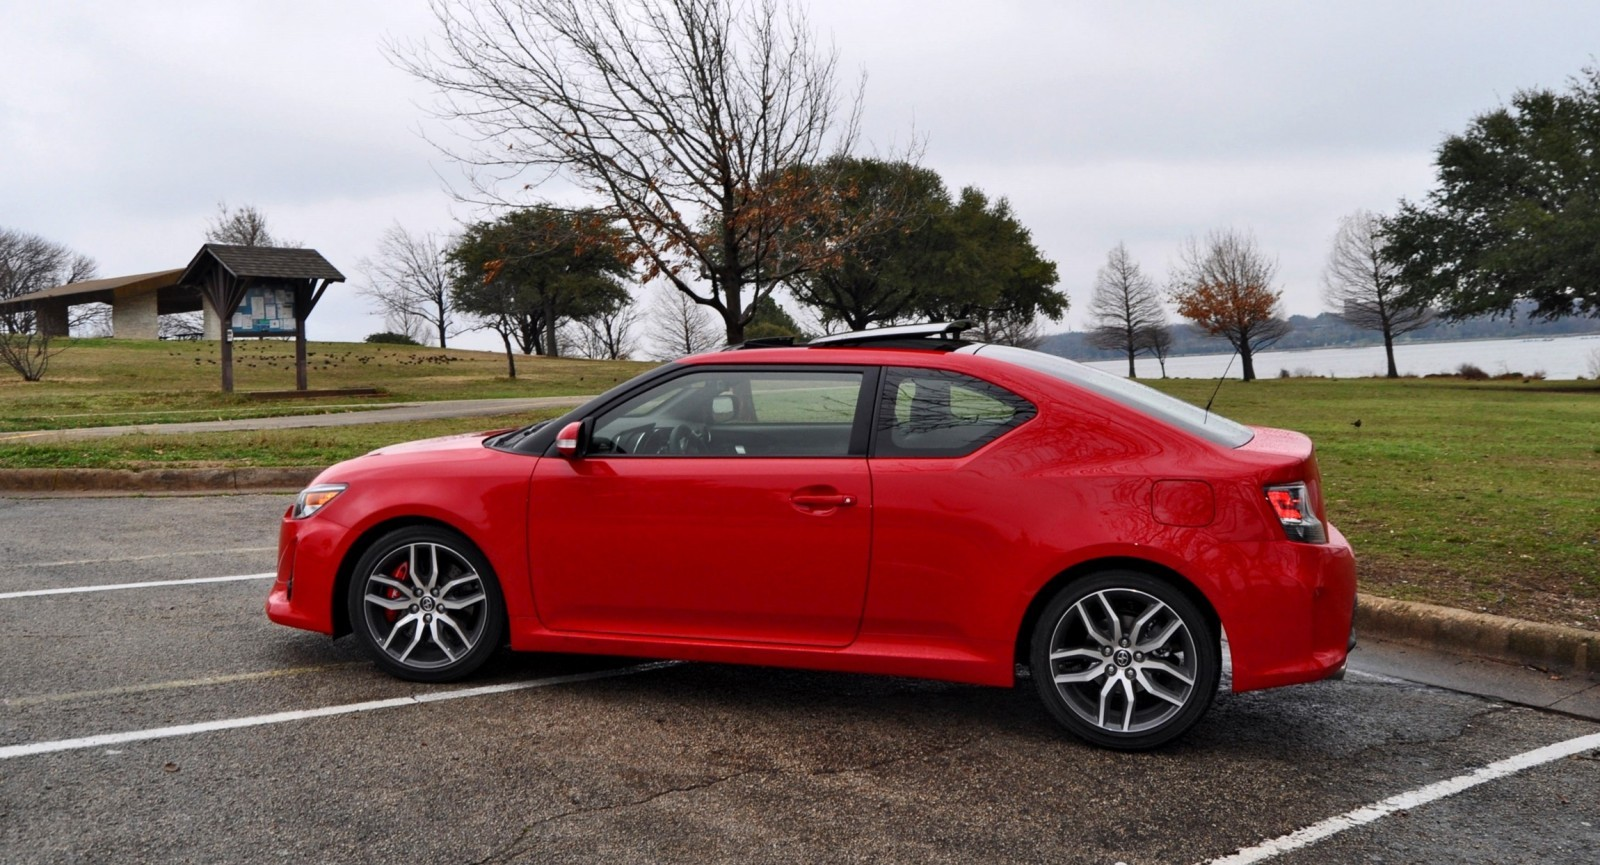 Road Test Review - 2015 Scion tC 6-Speed With TRD Performance Parts 81